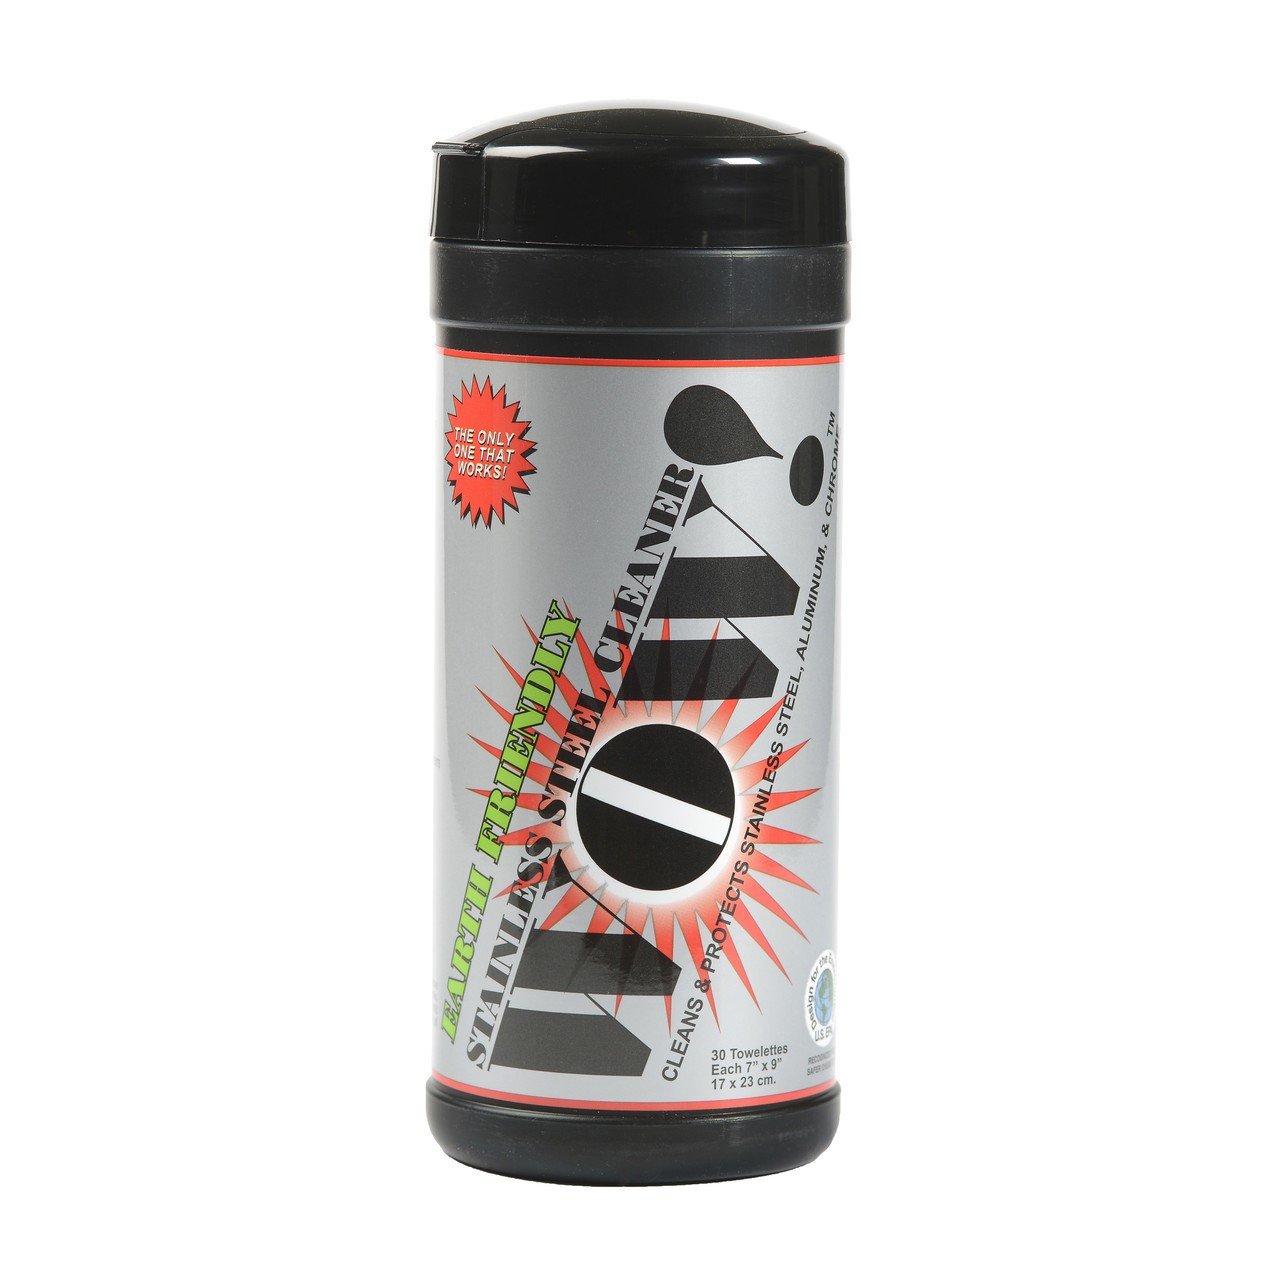 WOW! Stainless Steel Cleaner 30 Count Towelette Canister